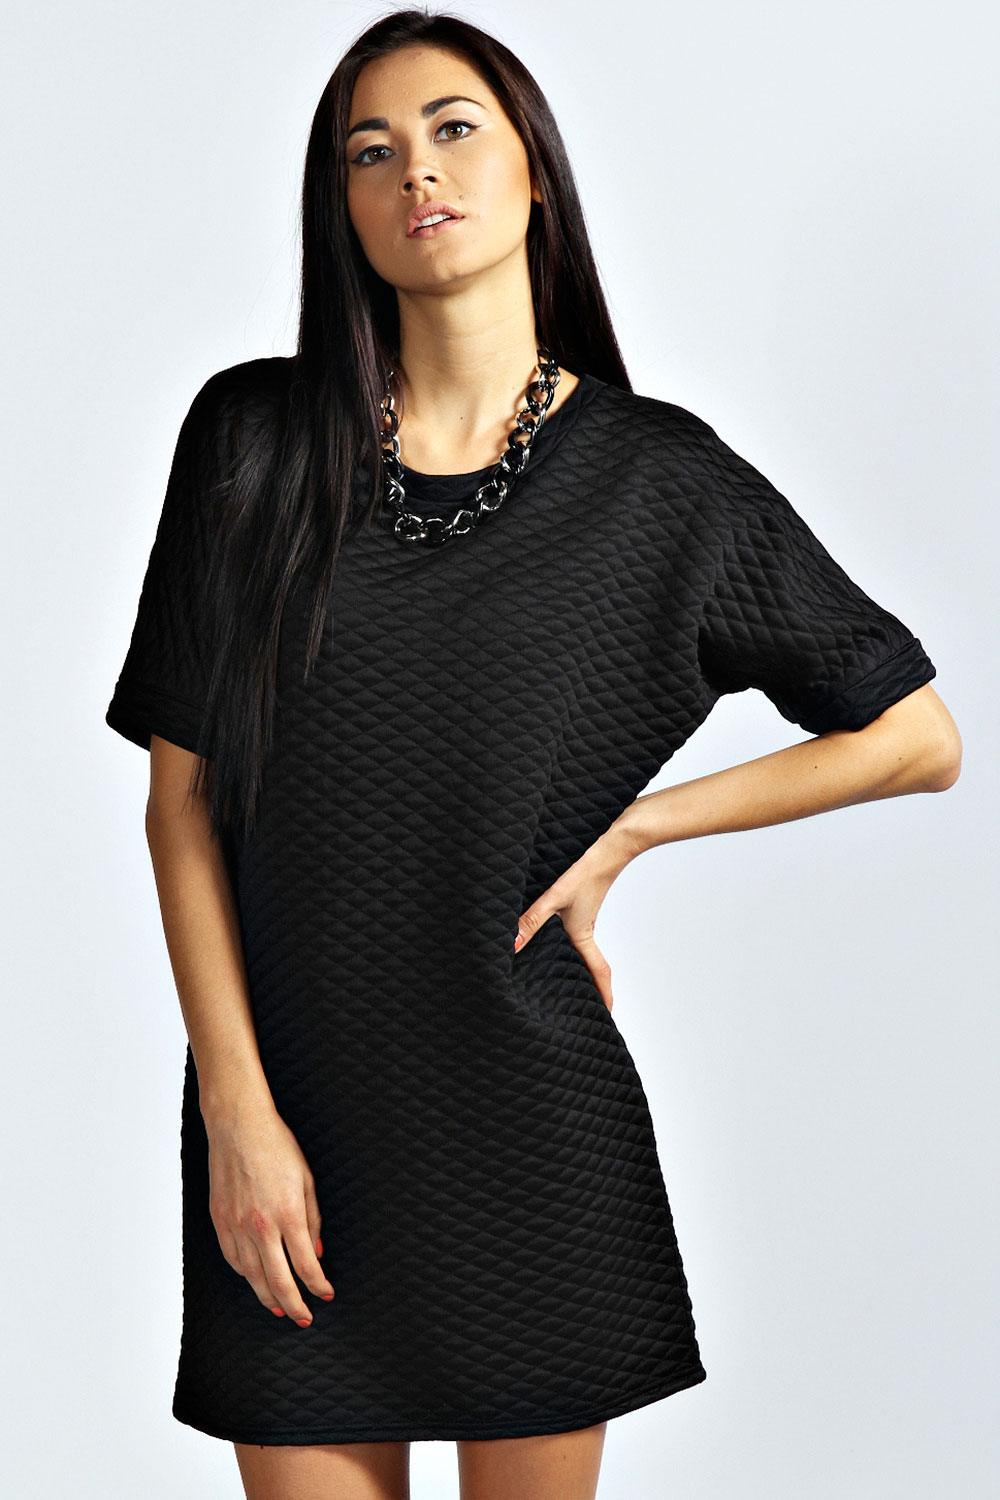 Black quilted t shirt - Boohoo Womens Ladies Karen Short Sleeve Hip Length